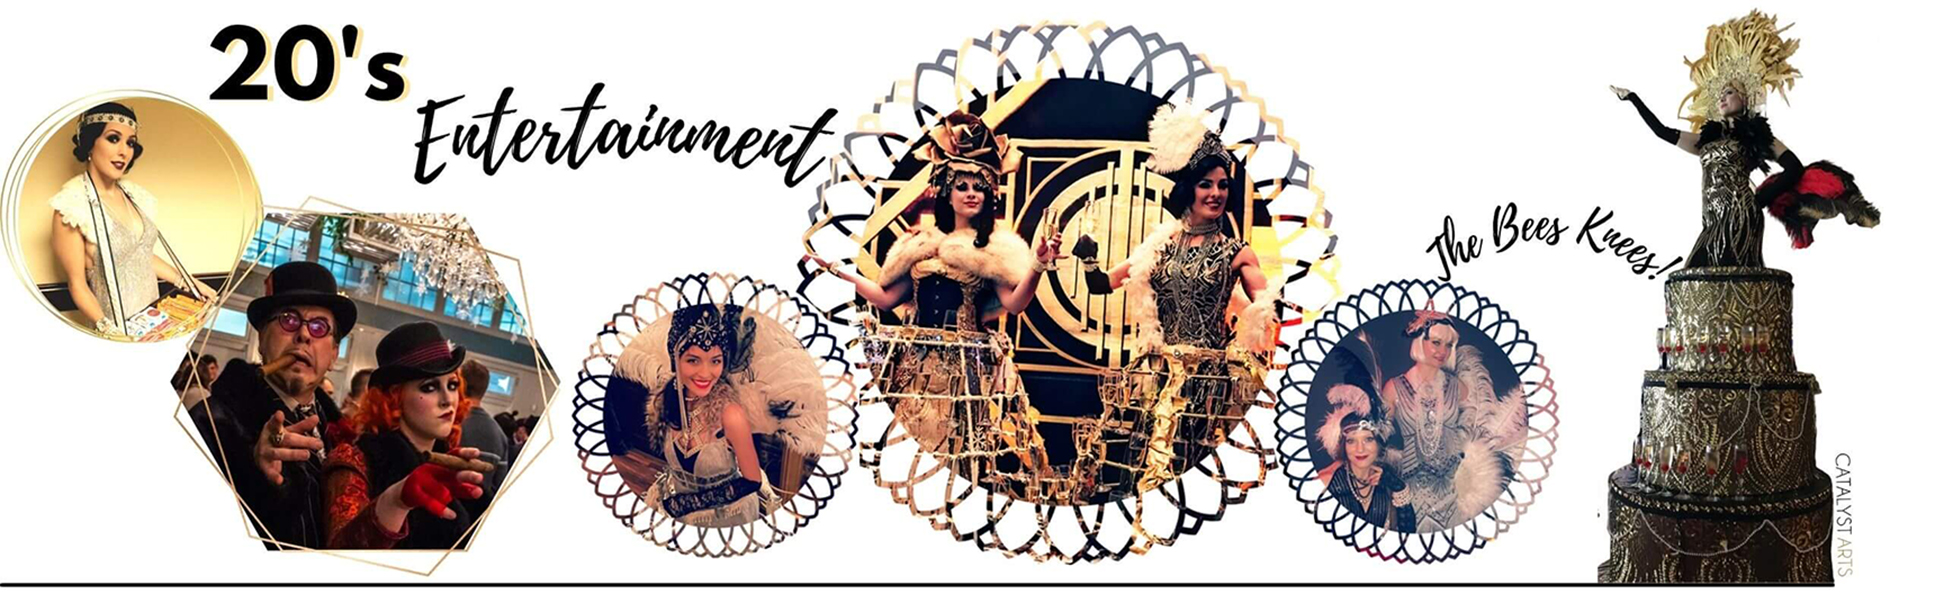 20's Gatsby Entertainment by Catalyst Arts in California